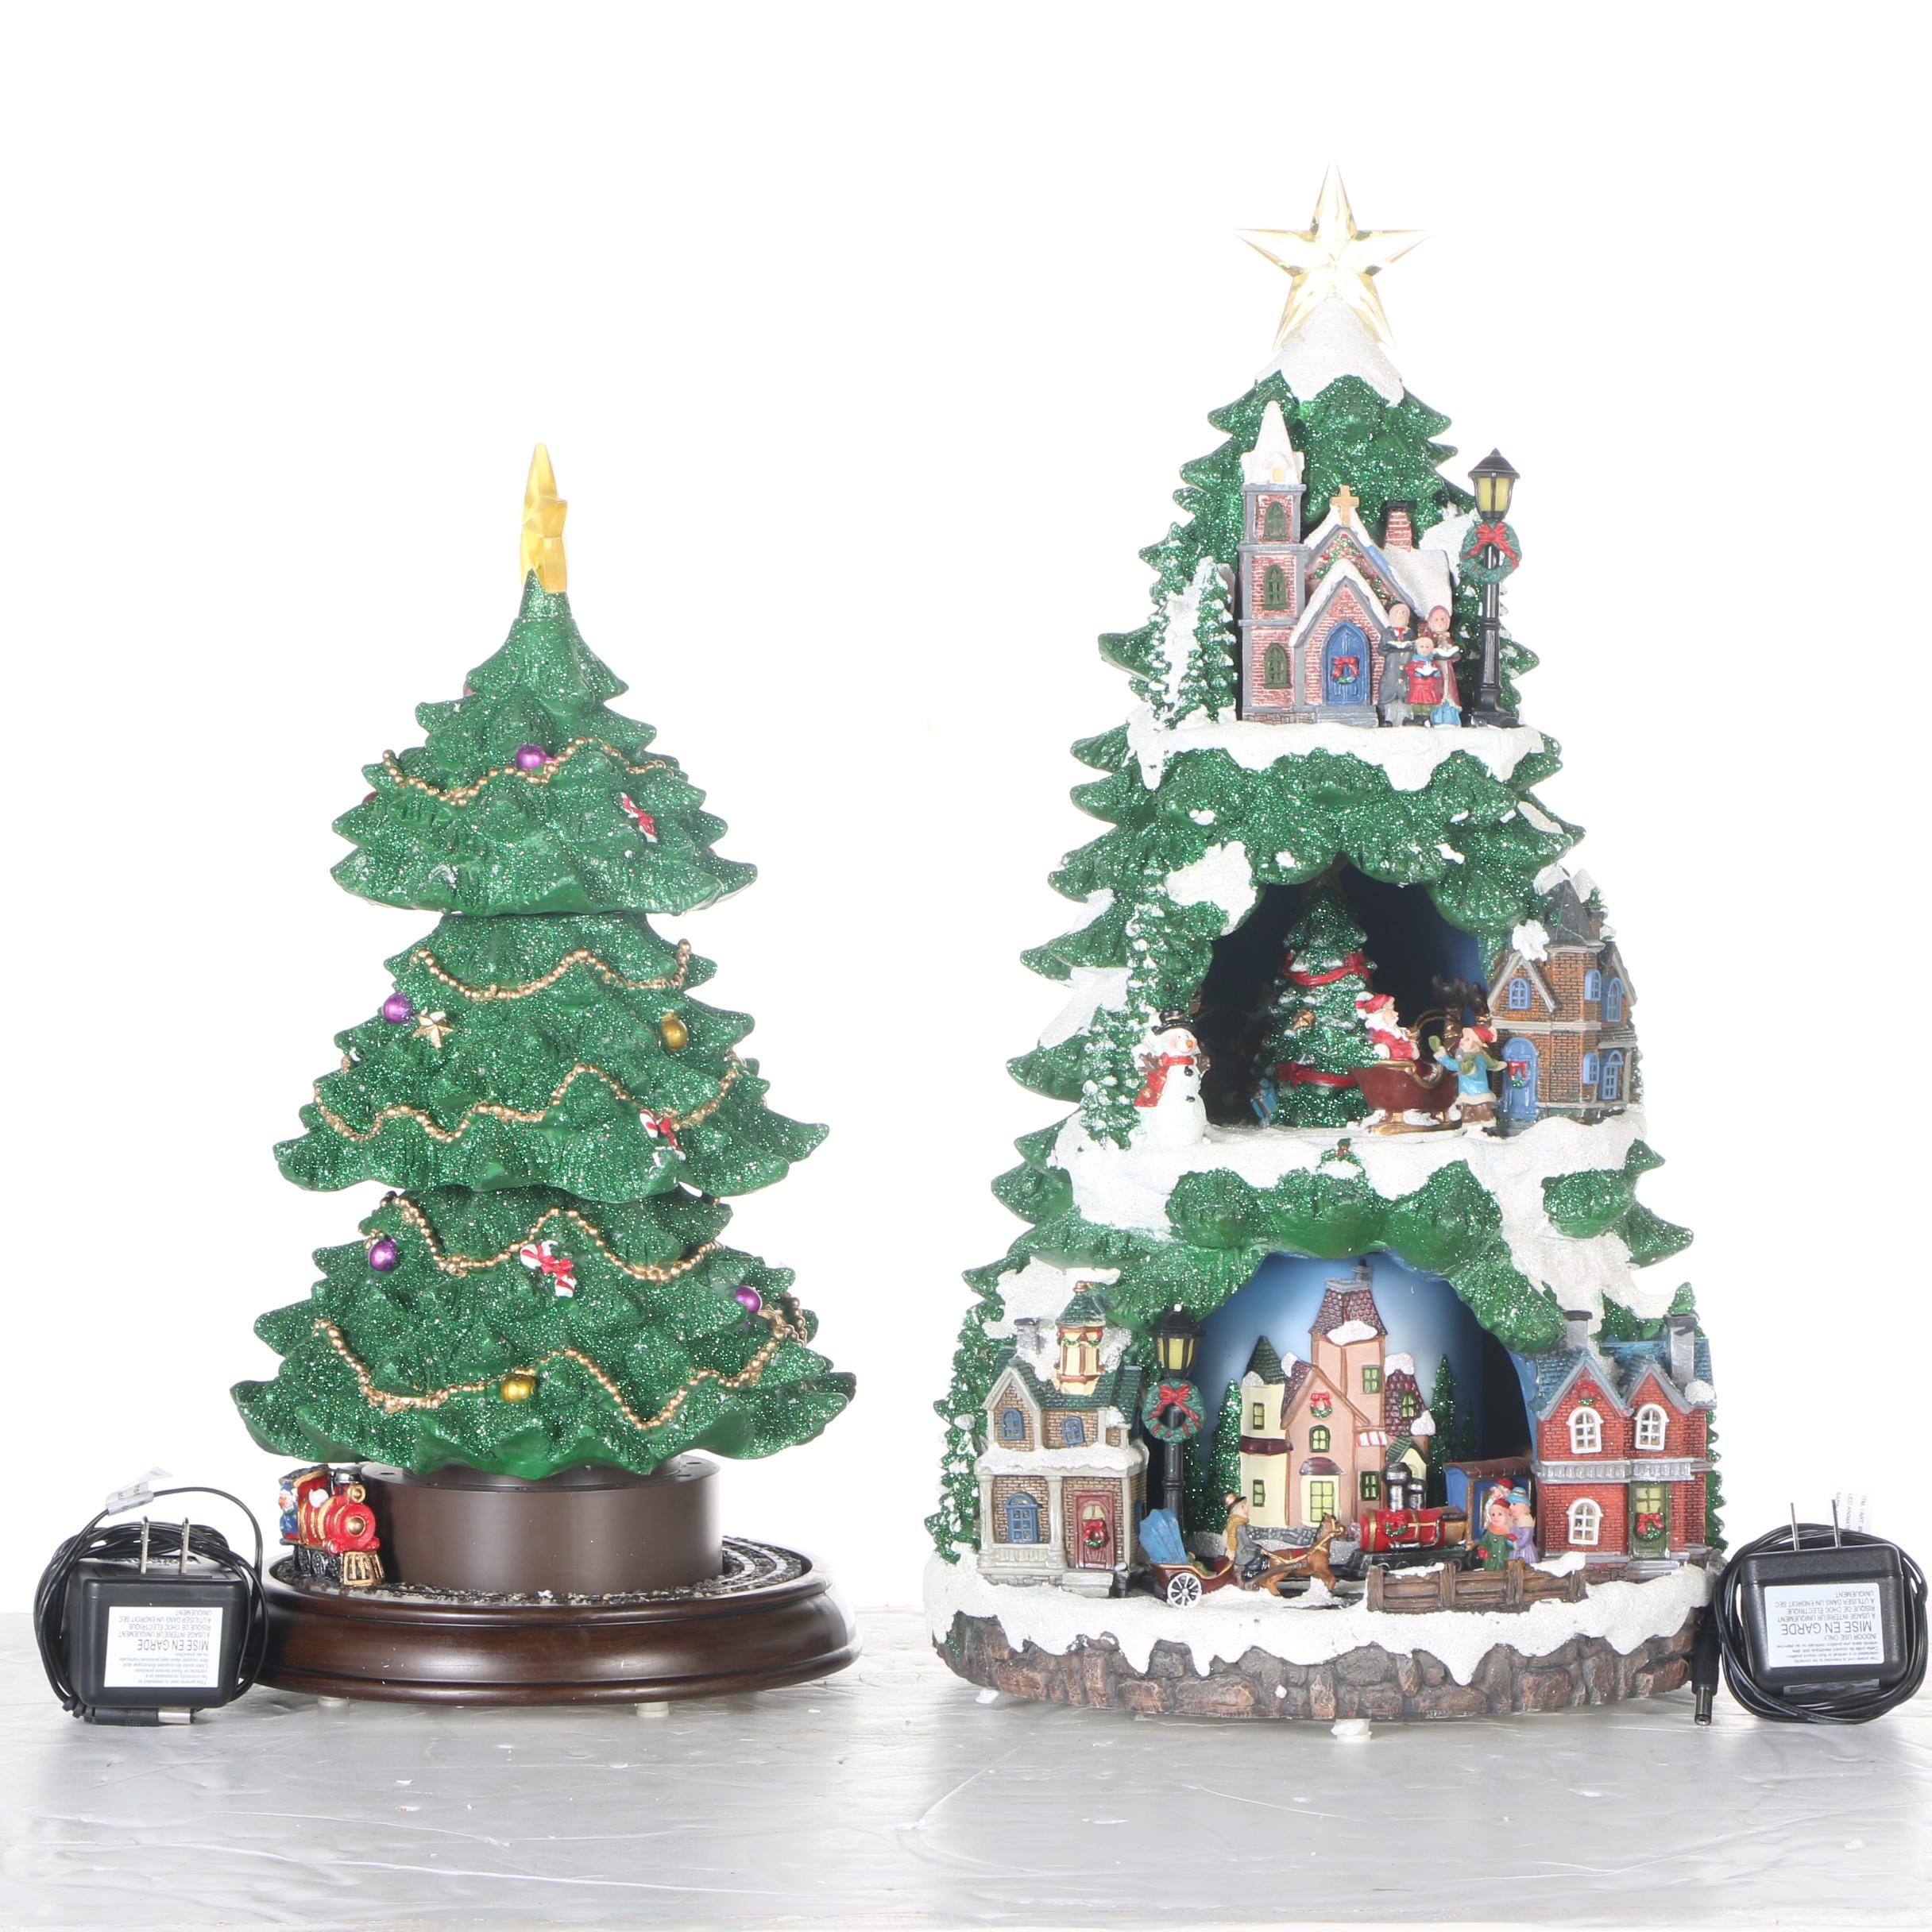 Two Lighted Christmas Tree Decorations